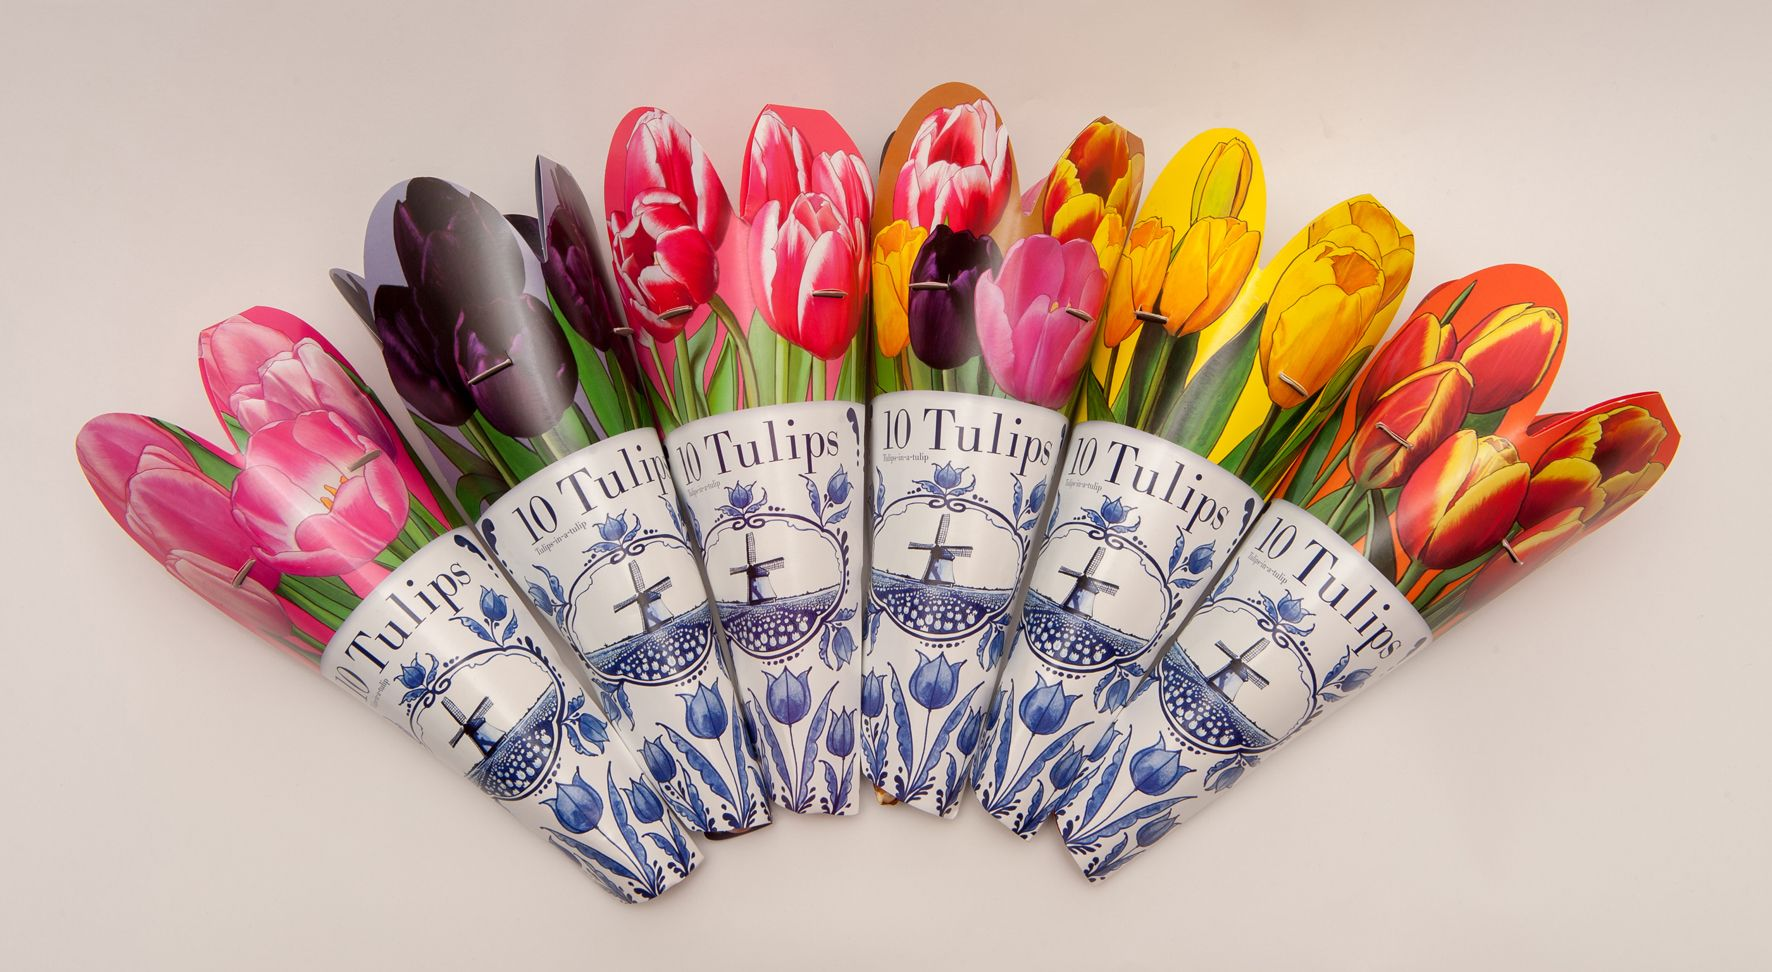 Tulips-in-a-Tulip